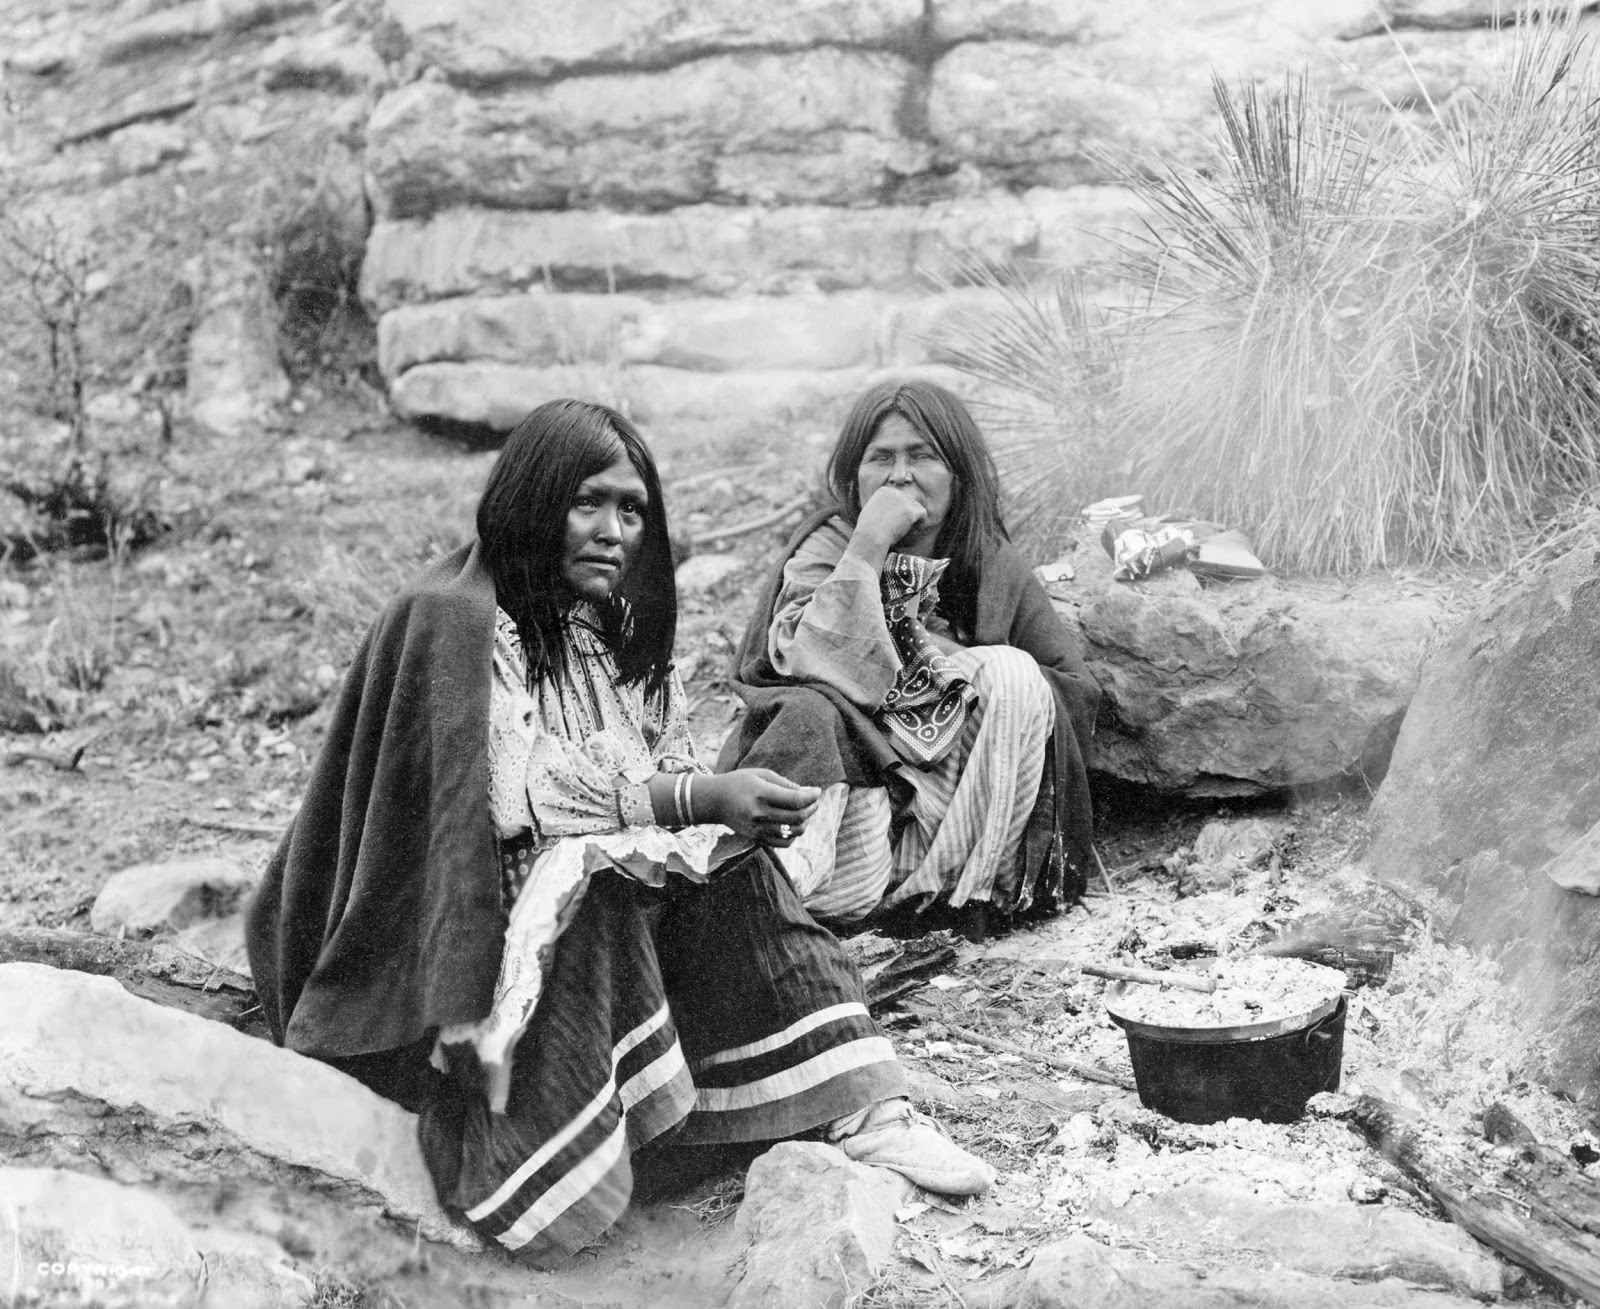 History in Photos: Edward S. Curtis - Southwest Indians